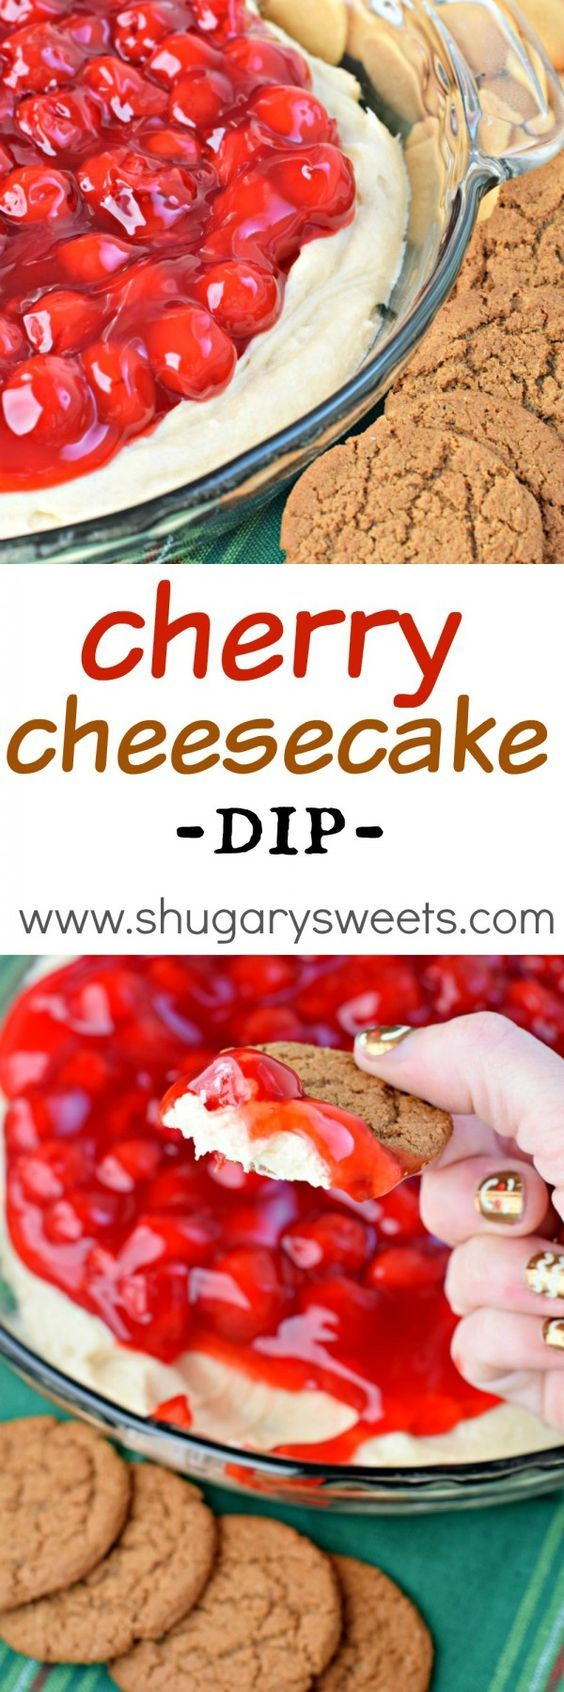 This Cherry Cheesecake Dip recipe is the perfect snack for the holidays. Serve…